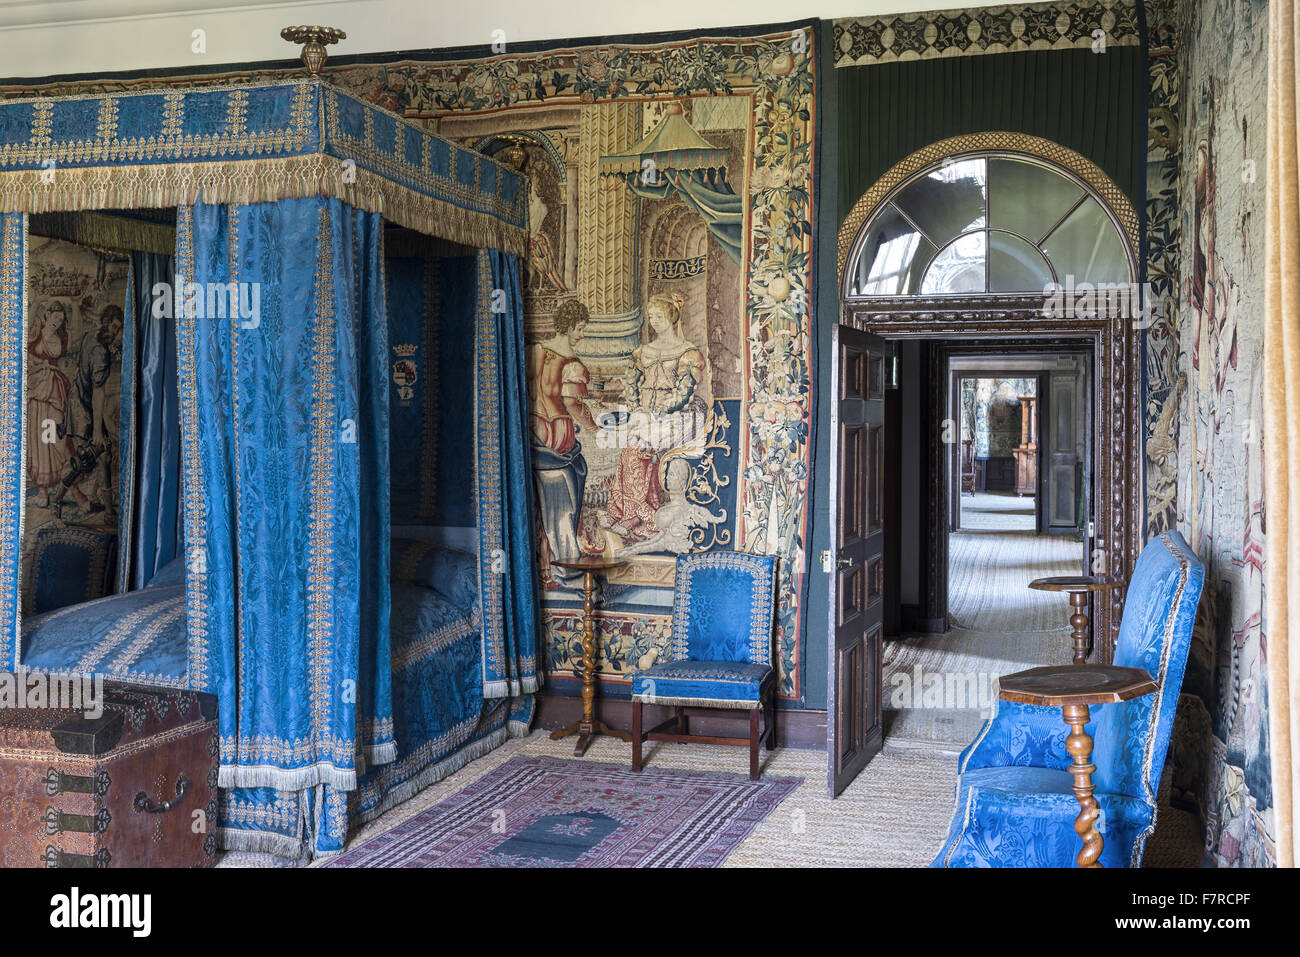 The Blue Room at Hardwick Hall, Derbyshire. Hardwick Hall was built in the late 16th century for Bess of Hardwick. - Stock Image